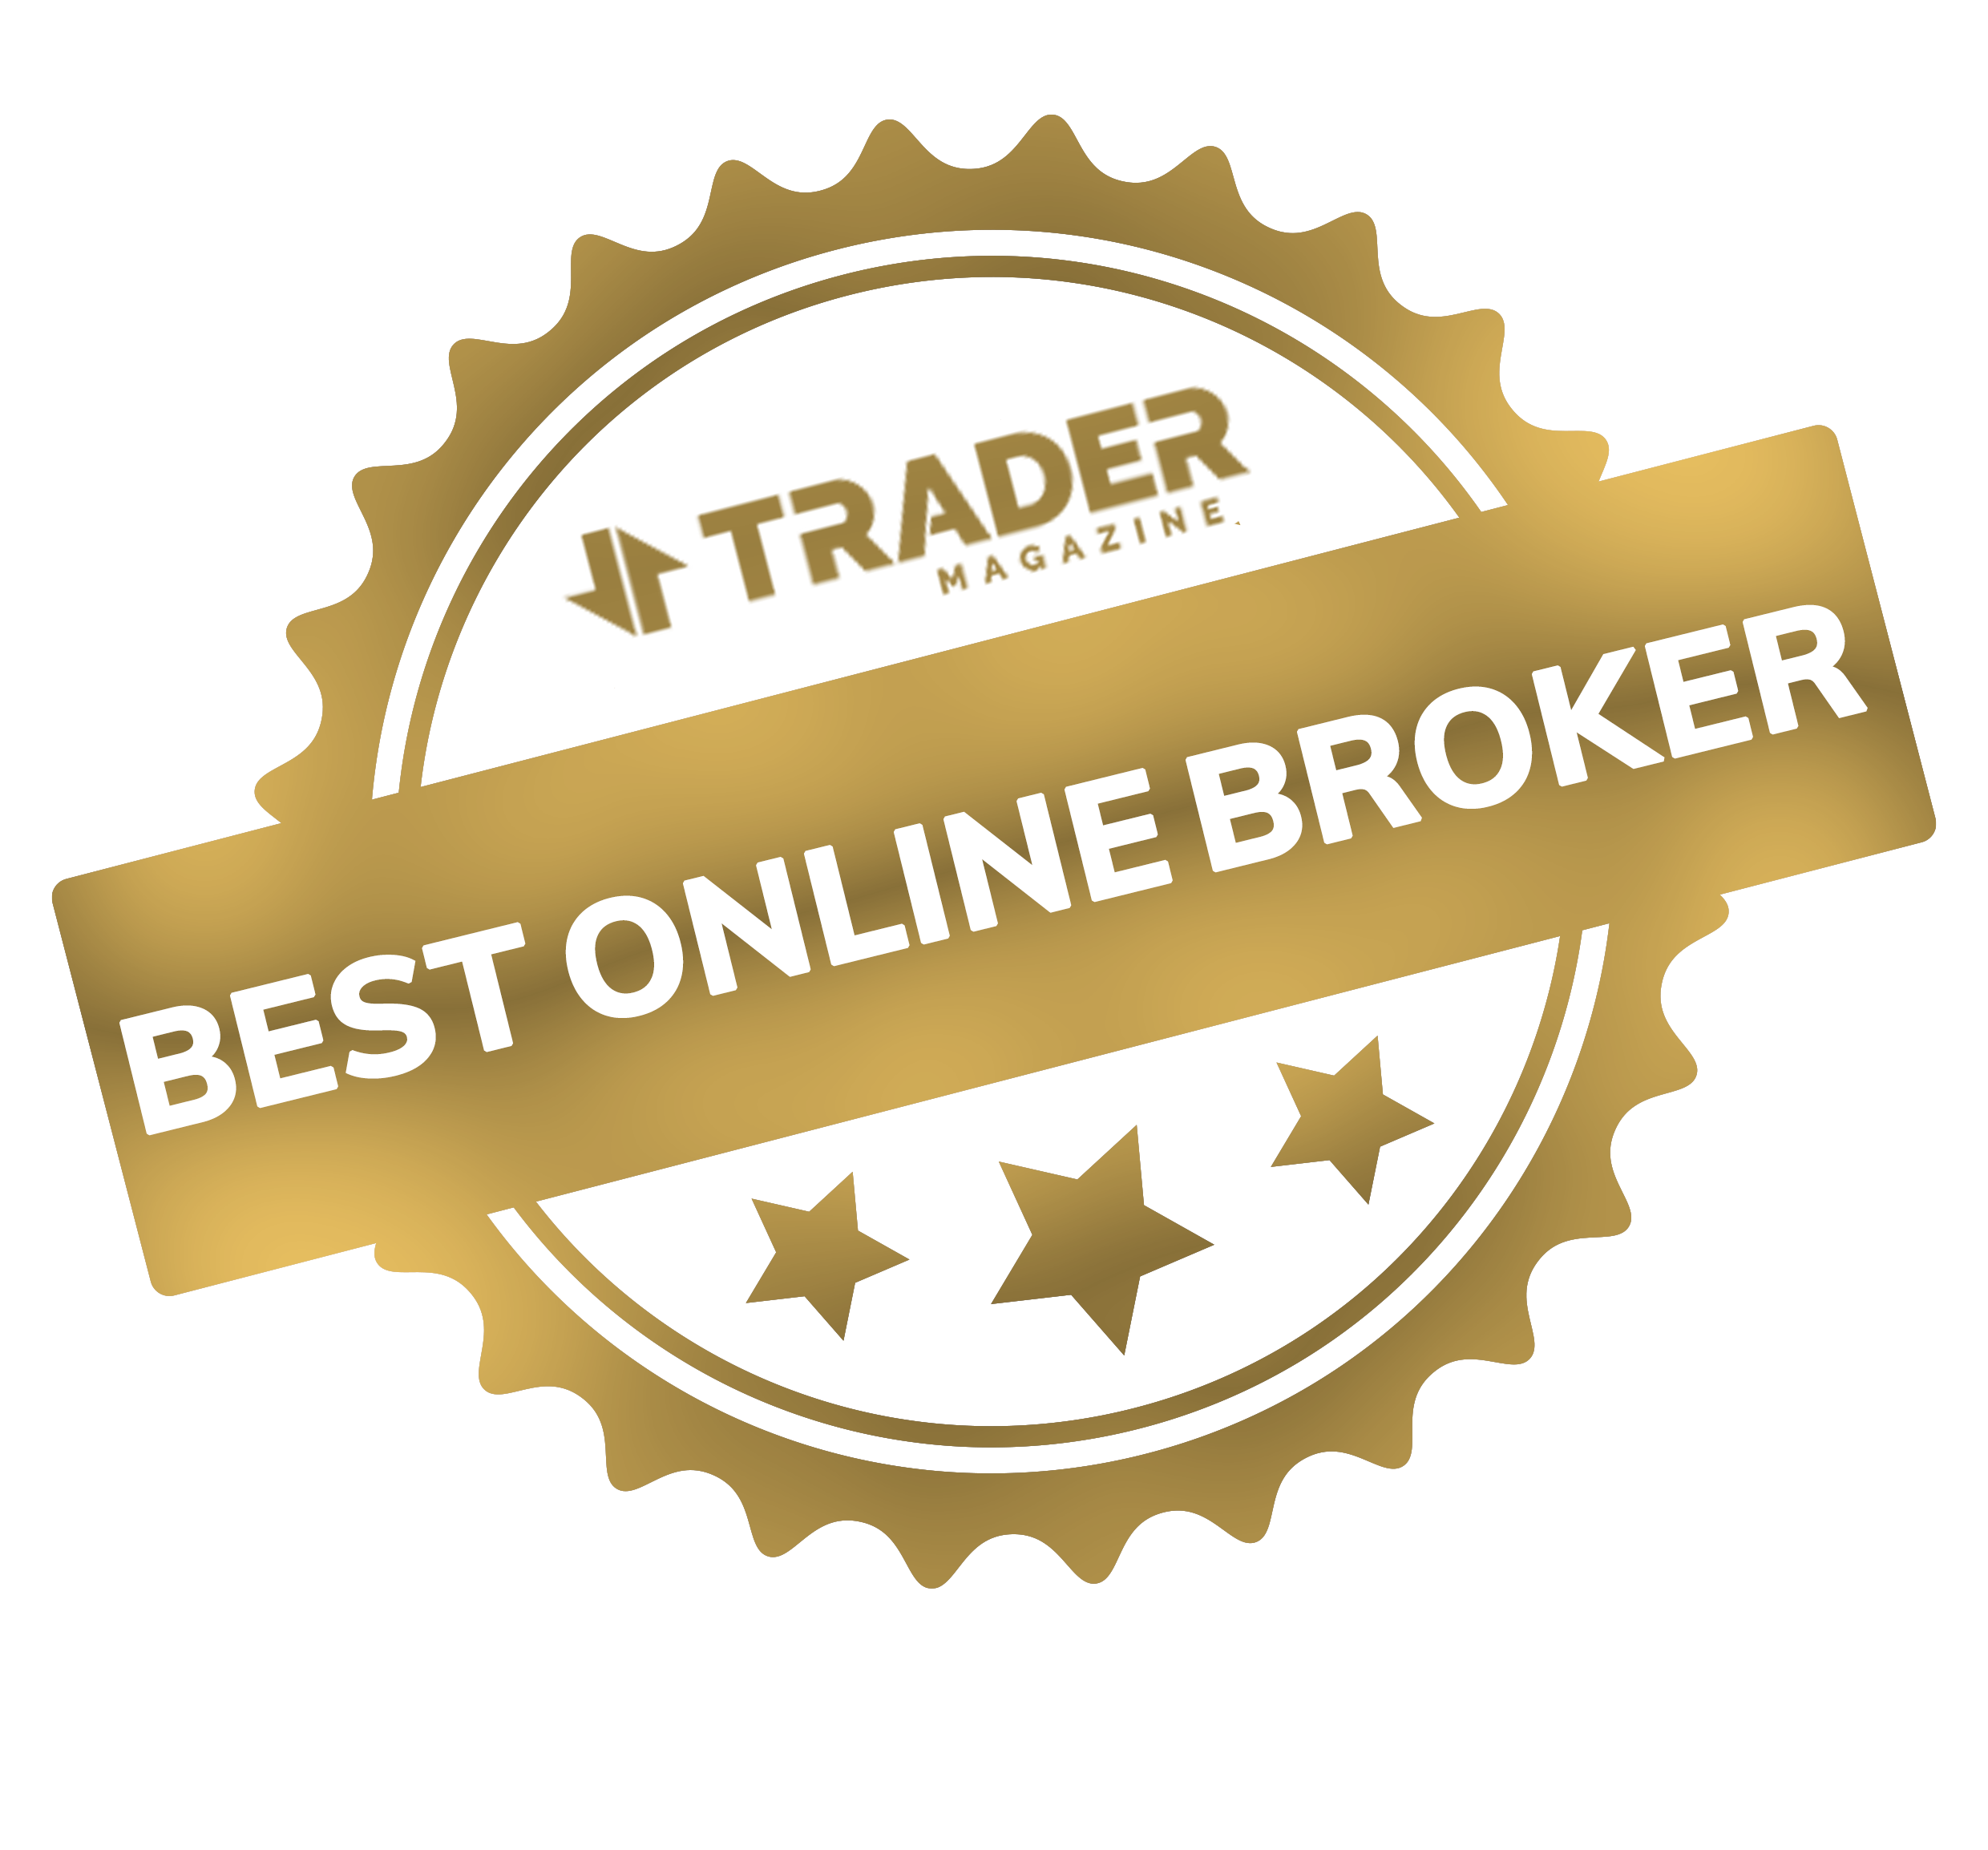 Gulf Brokers, Gulfbrokres, Golden Brokers, Goldenbrokers, Alpho